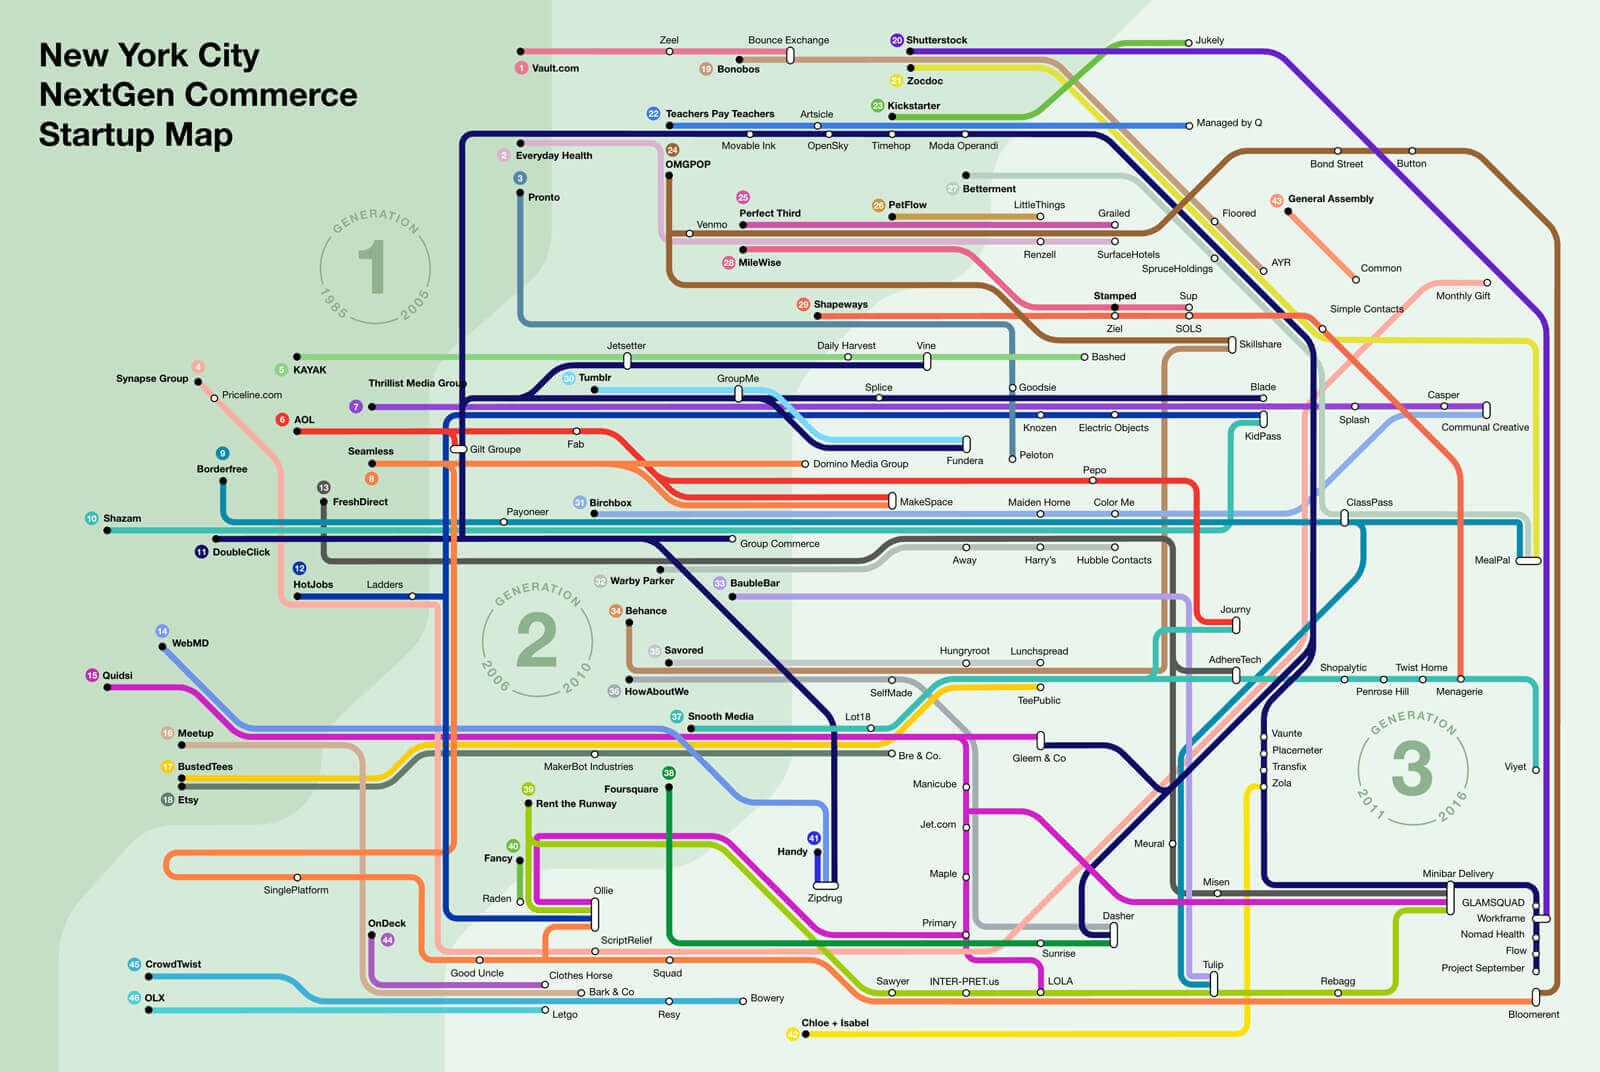 Infographic based on Subway map, showing the New York Next Gen Startup Map.